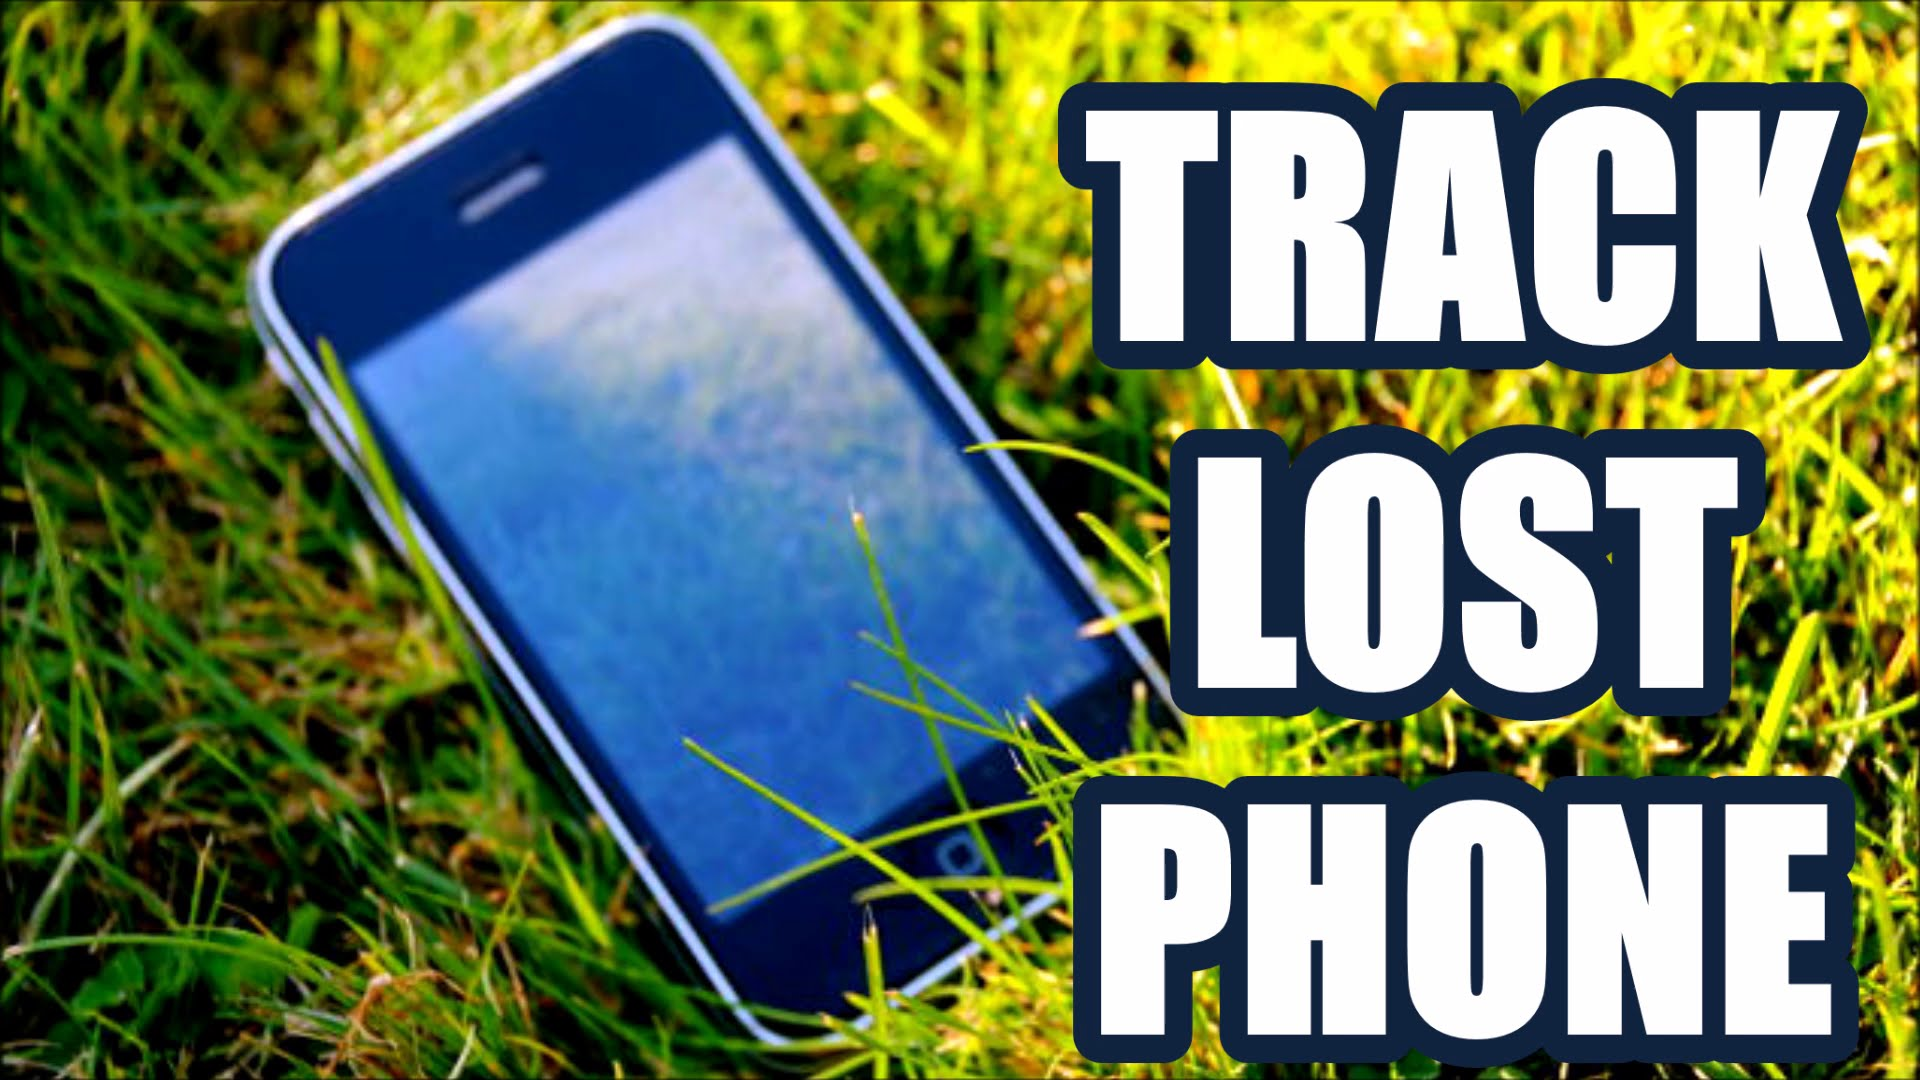 6 Methods to track a missing phone and recover it